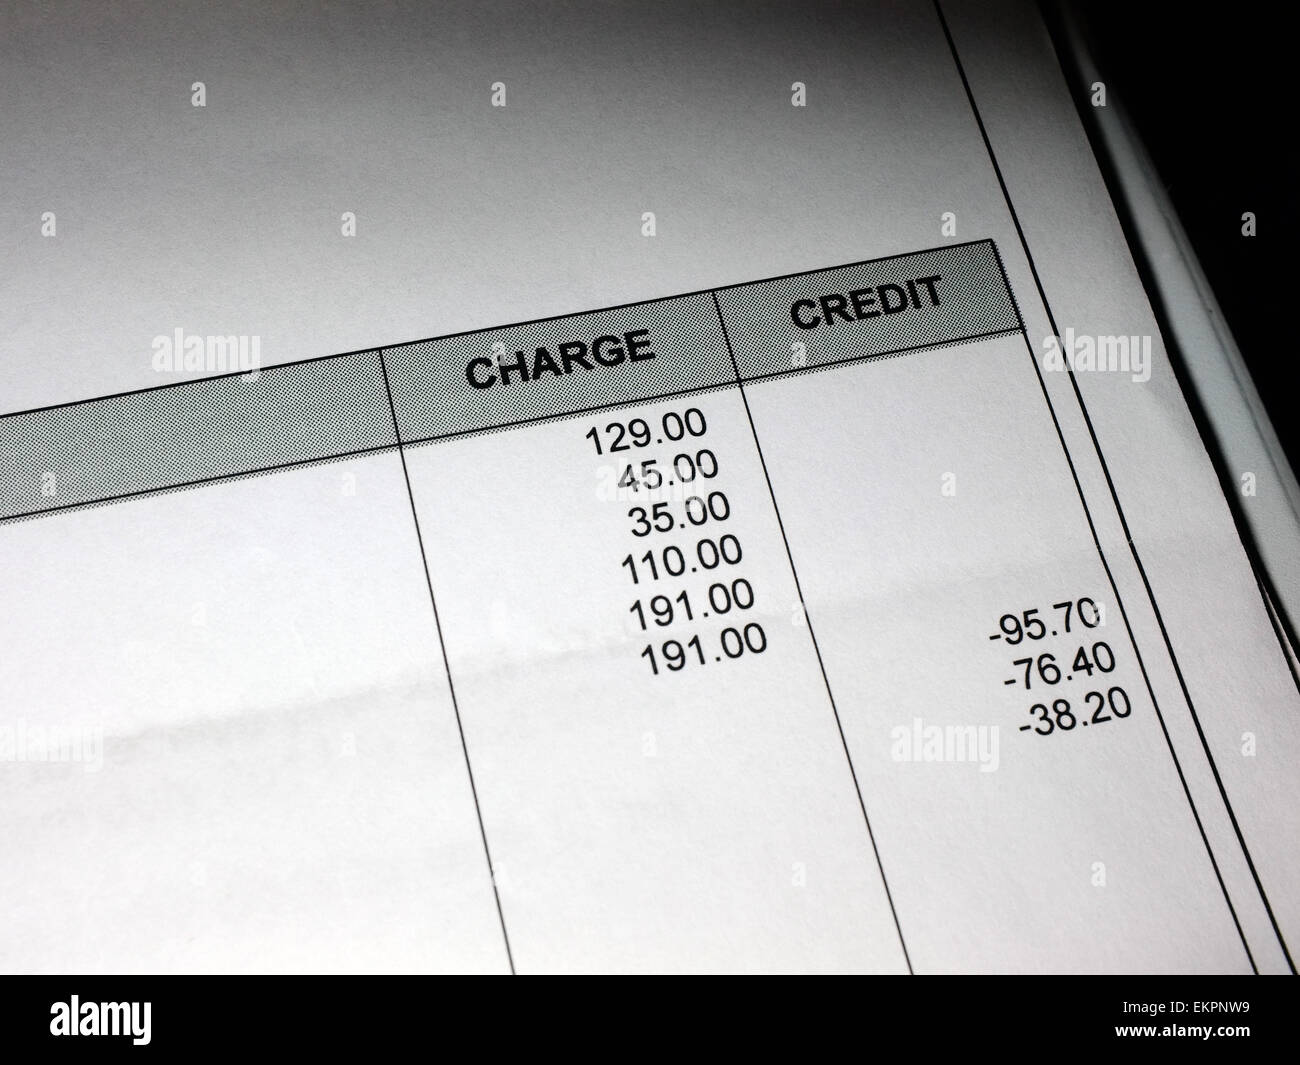 Charge and Credit columns on banking paperwork. - Stock Image